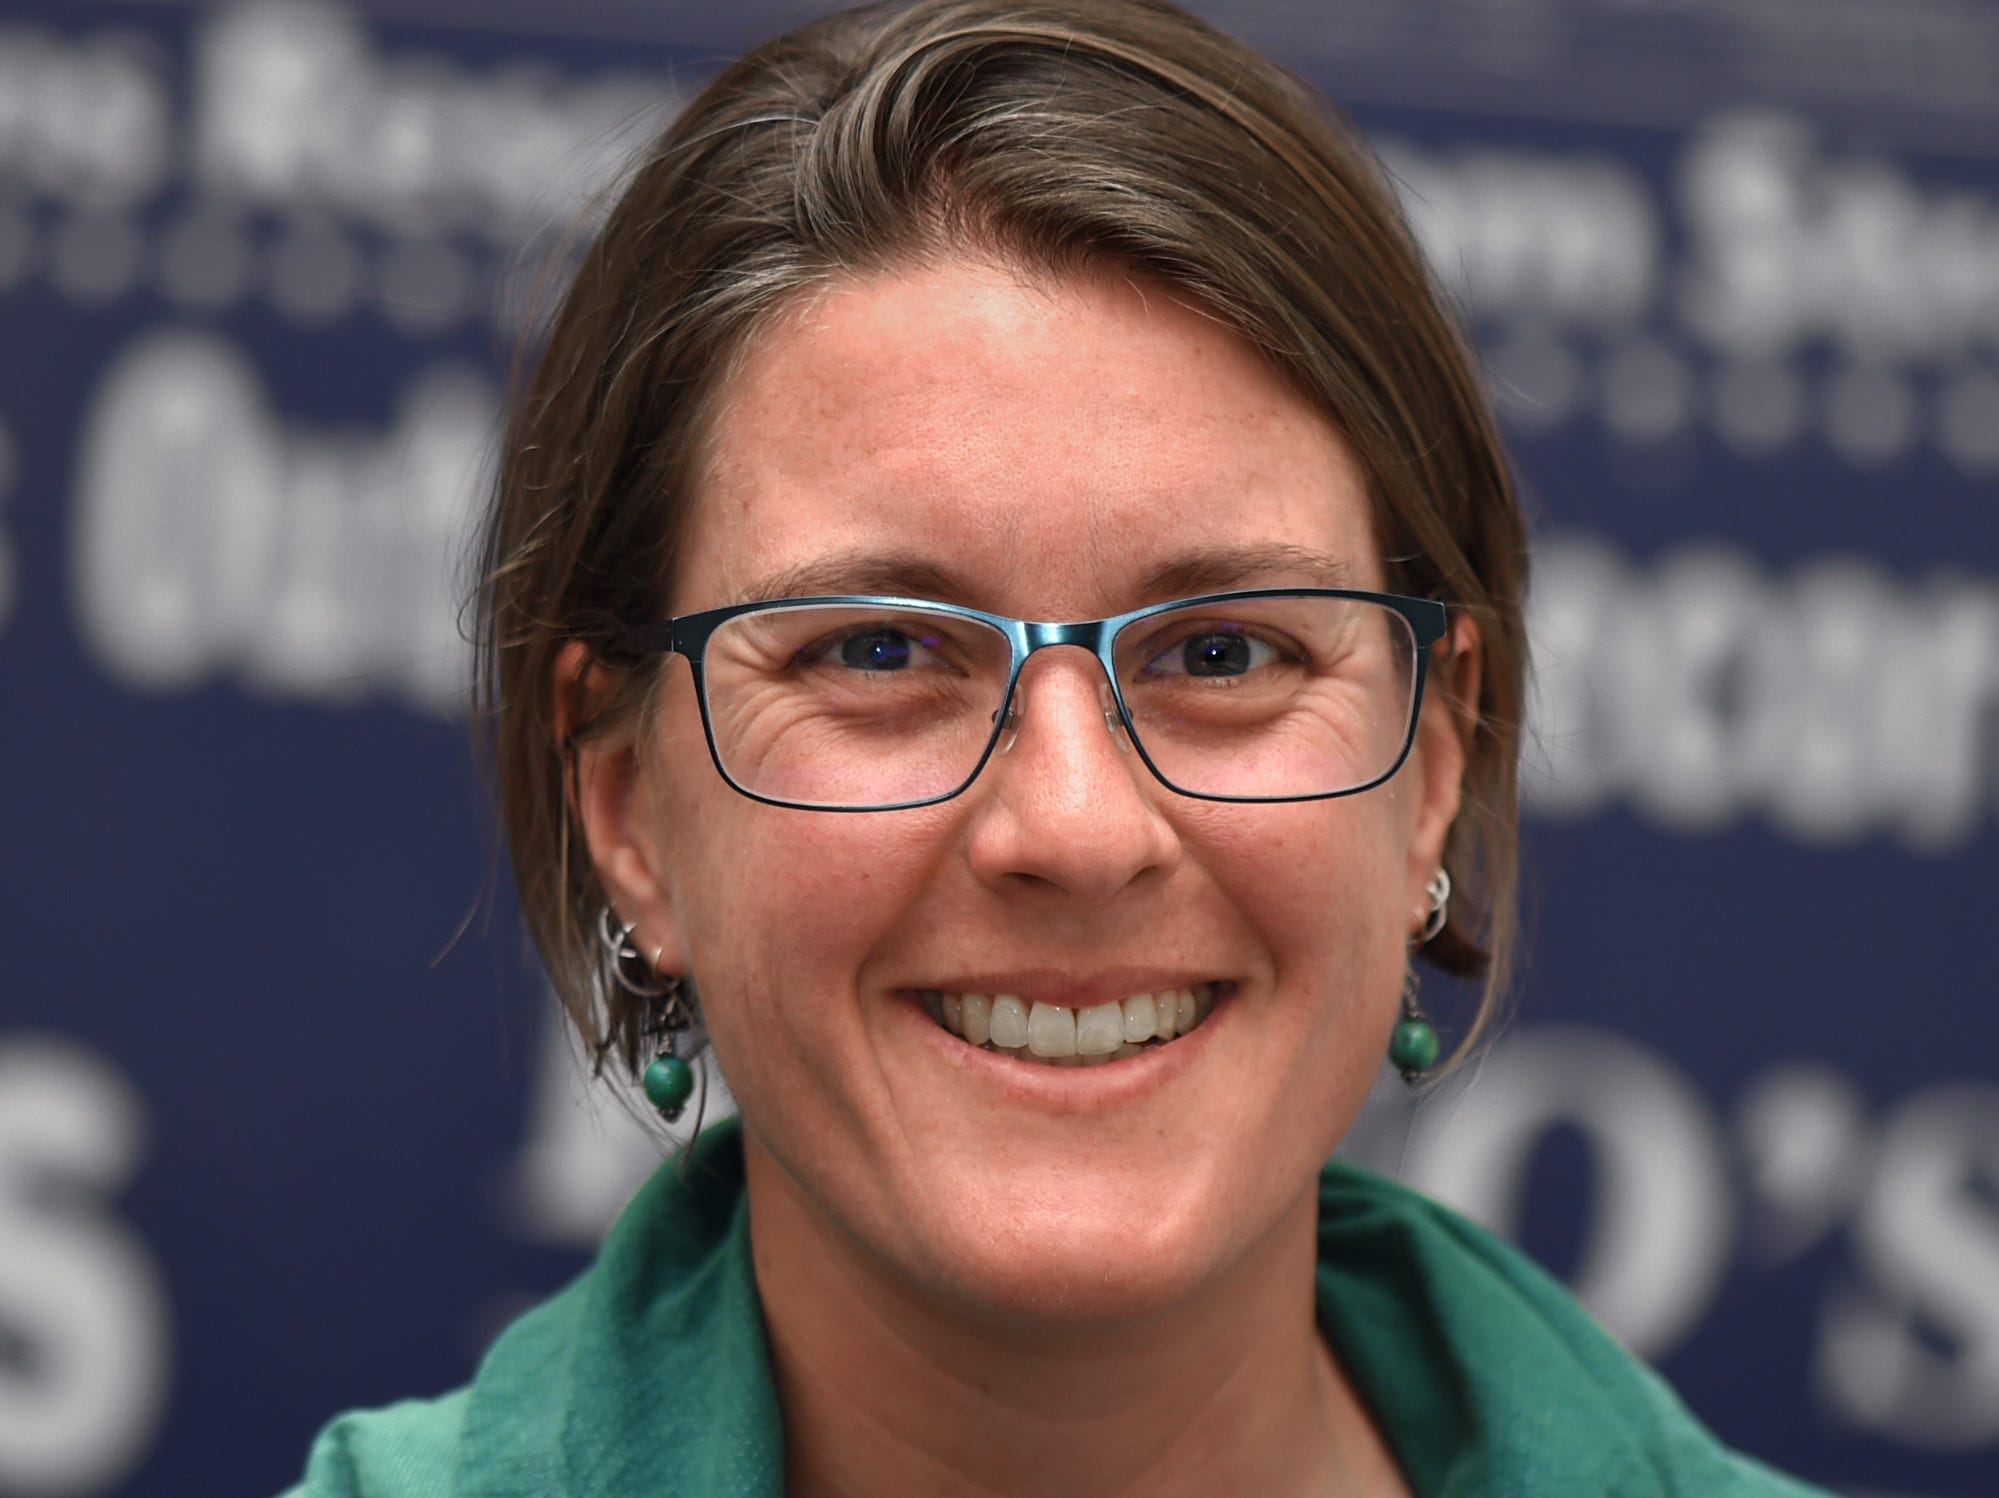 """Amy Alonzo, covers Mason Valley and rural Nevada: """"Journalists are critical to government accountability and affecting change in their communities. I've worked as a journalist for 20 years because I see the impacts my work has on the communities I cover."""""""